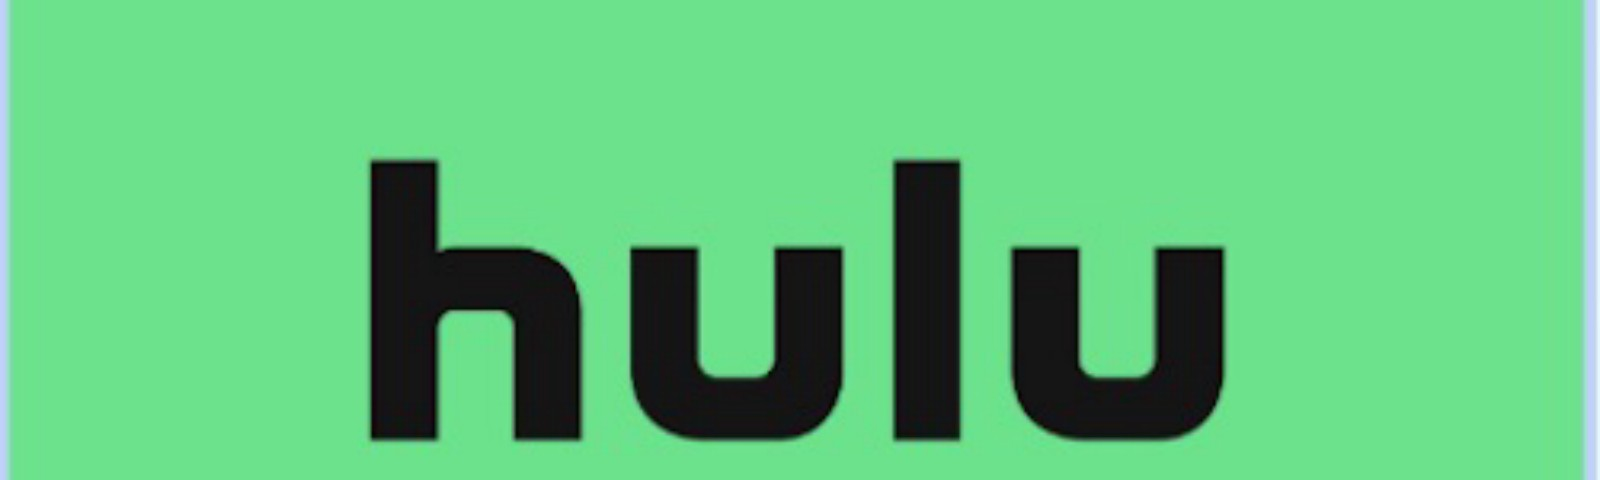 Automating mitmproxy and Improving Hulu's Build Loading Tool